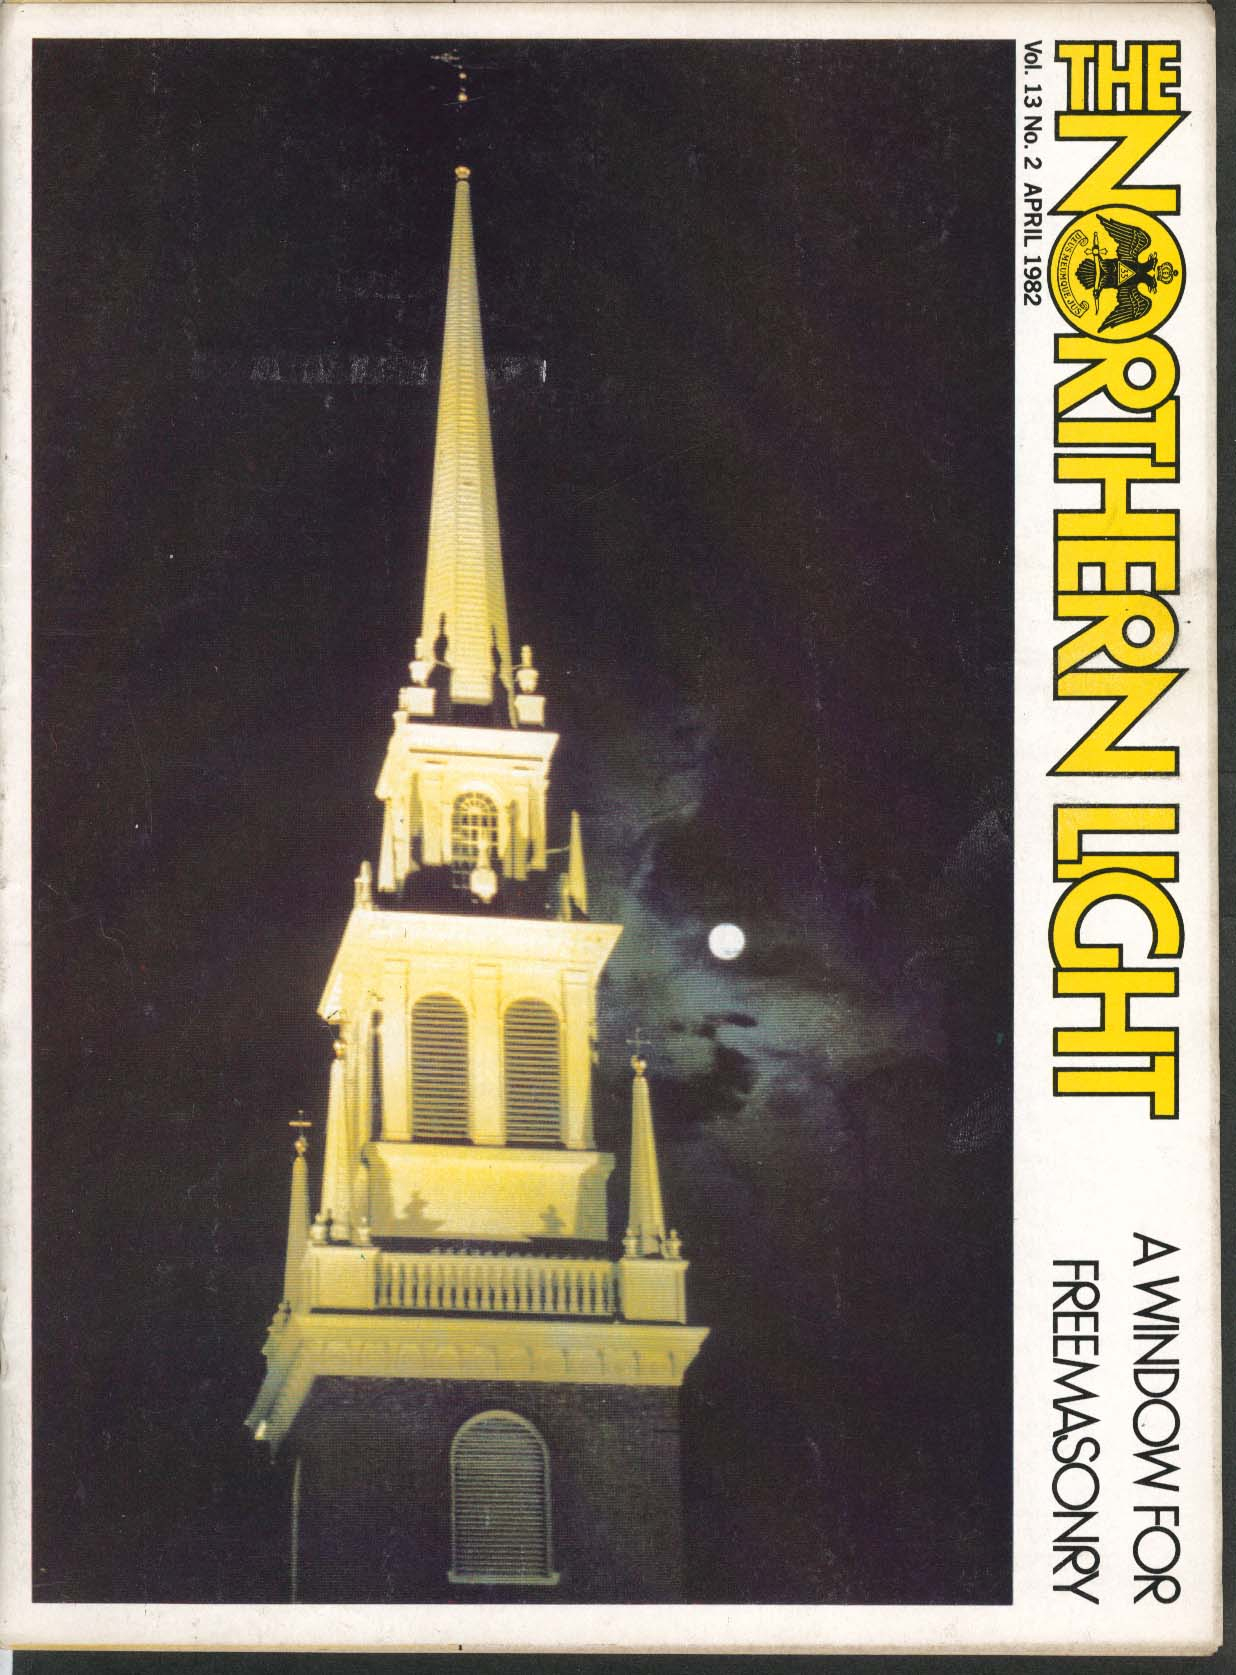 Image for NORTHERN LIGHT Vol 13 #2 Old North Church Endorphins Michigan Masons 4 1982